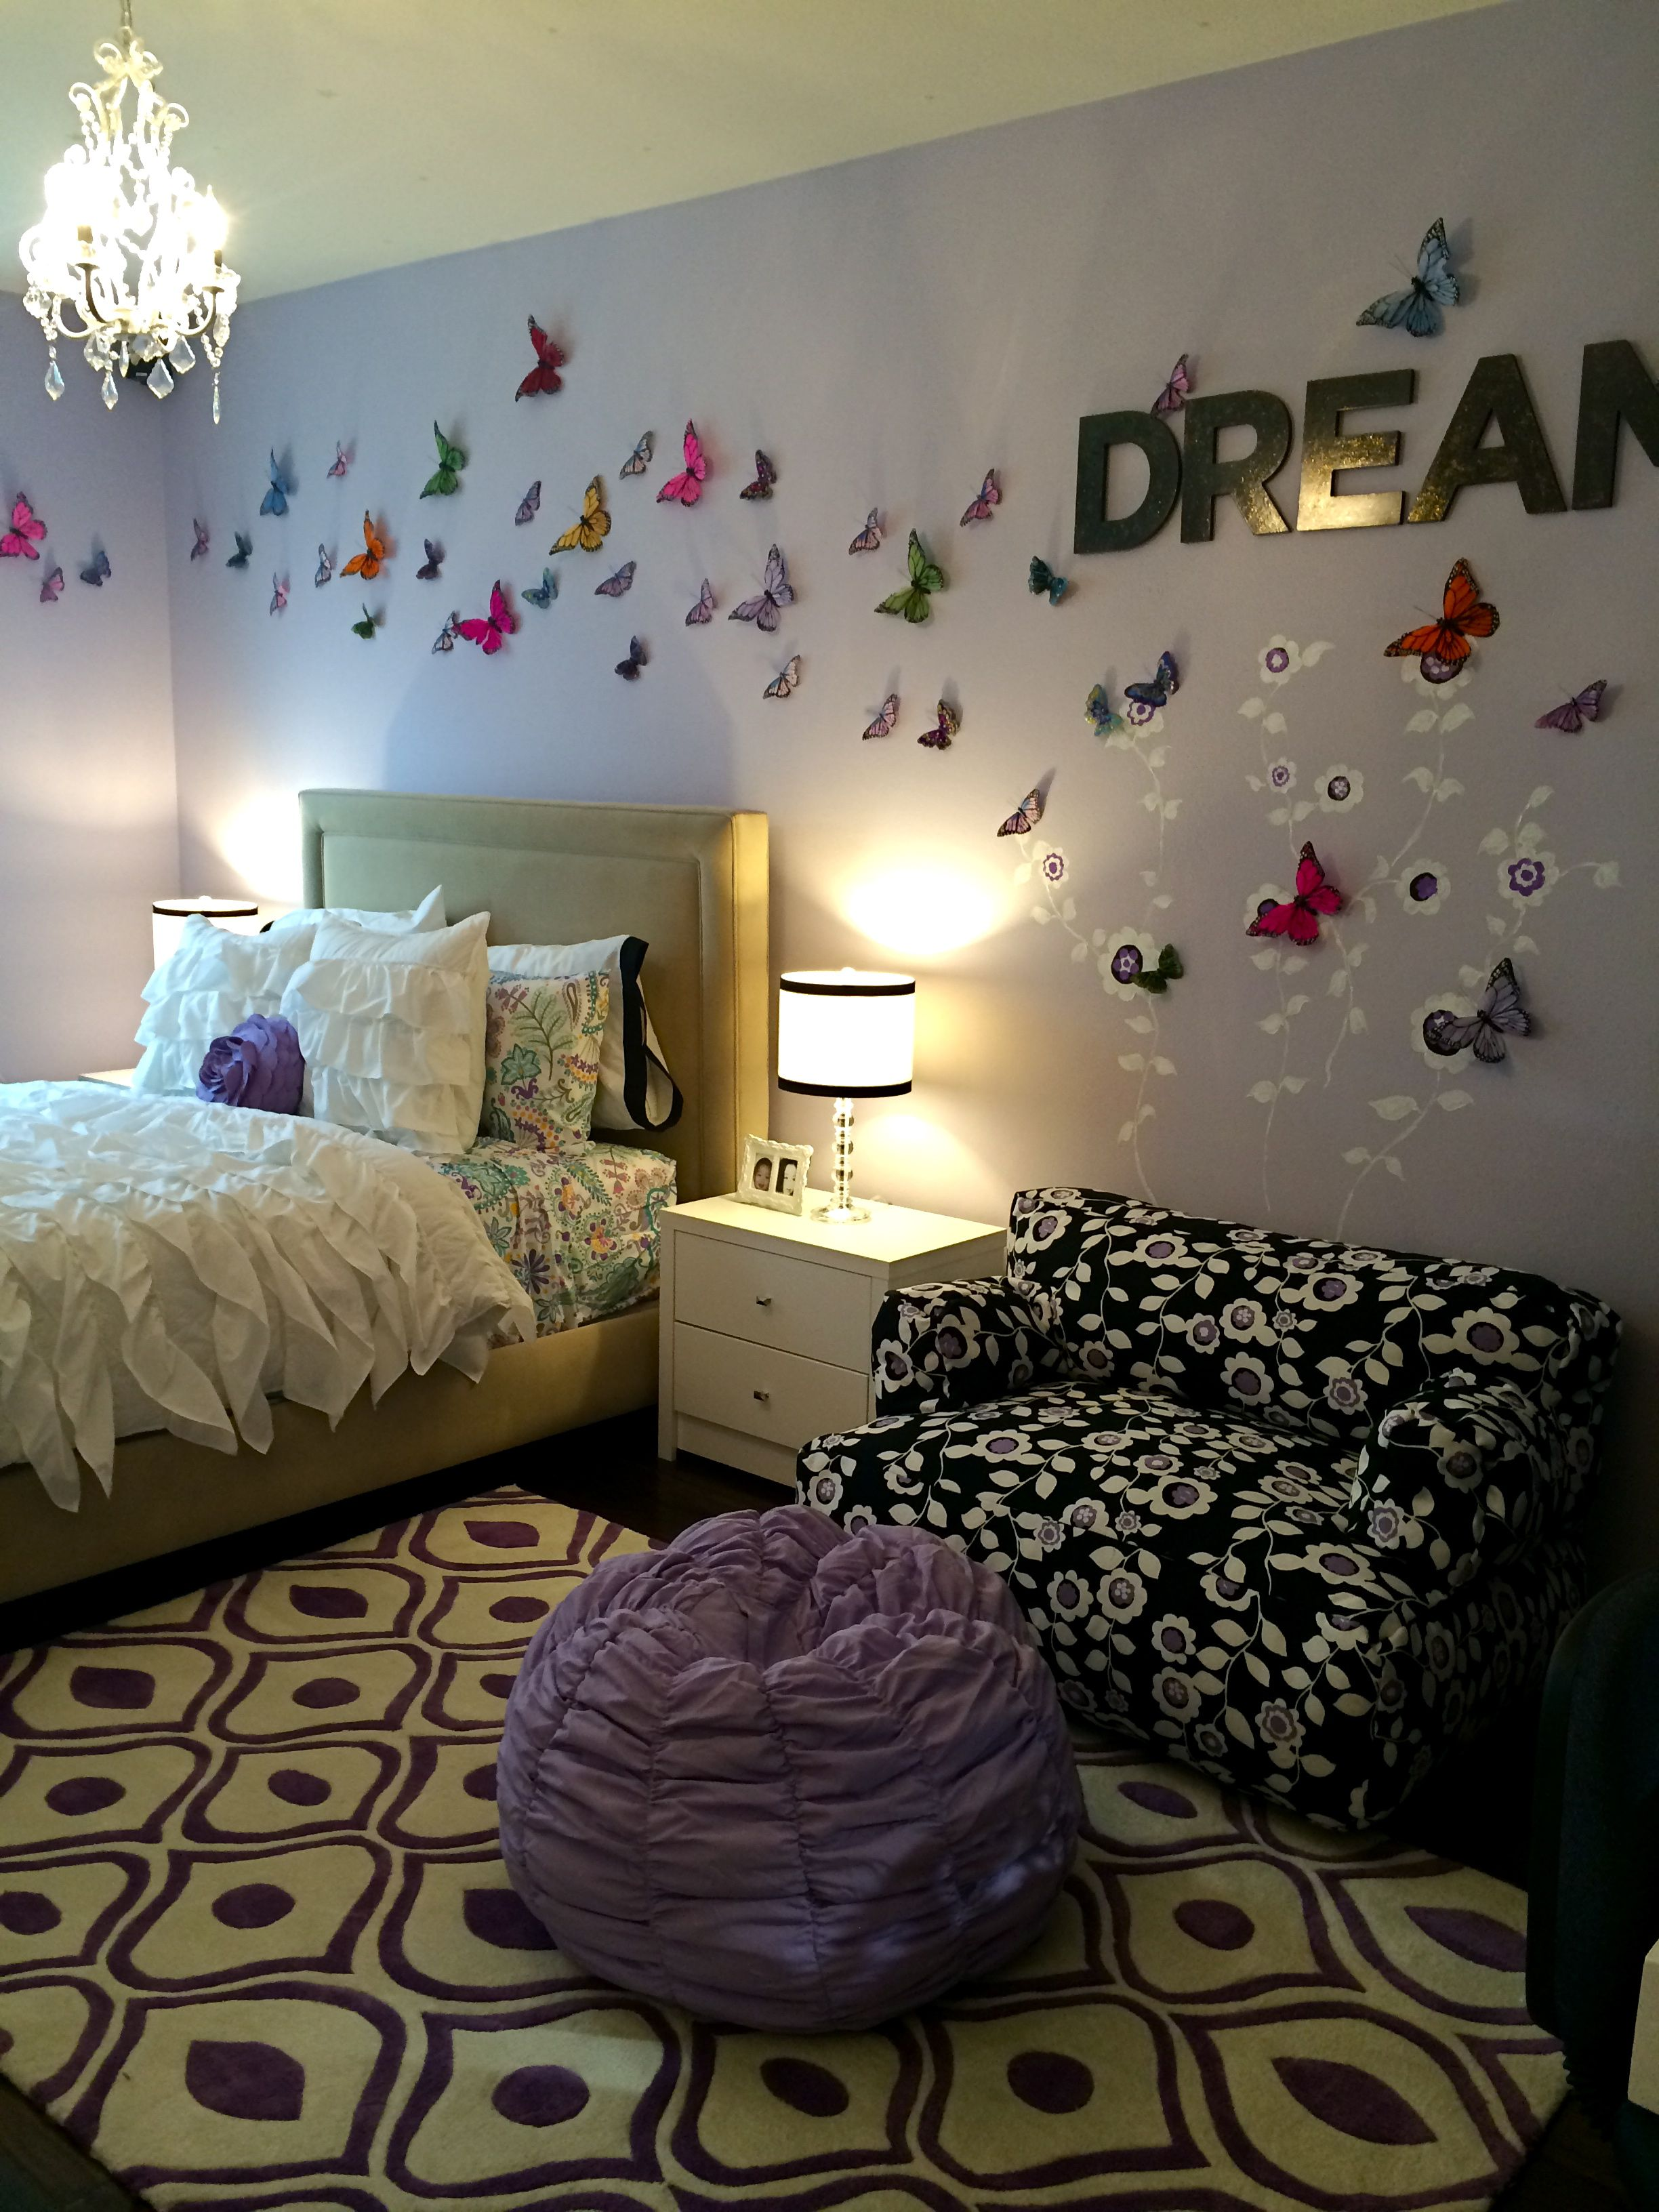 A 10 Year Old Girls Dream Bedroom!! Contact Www.4g Designs.com To Create  Your Beautiful Room!!